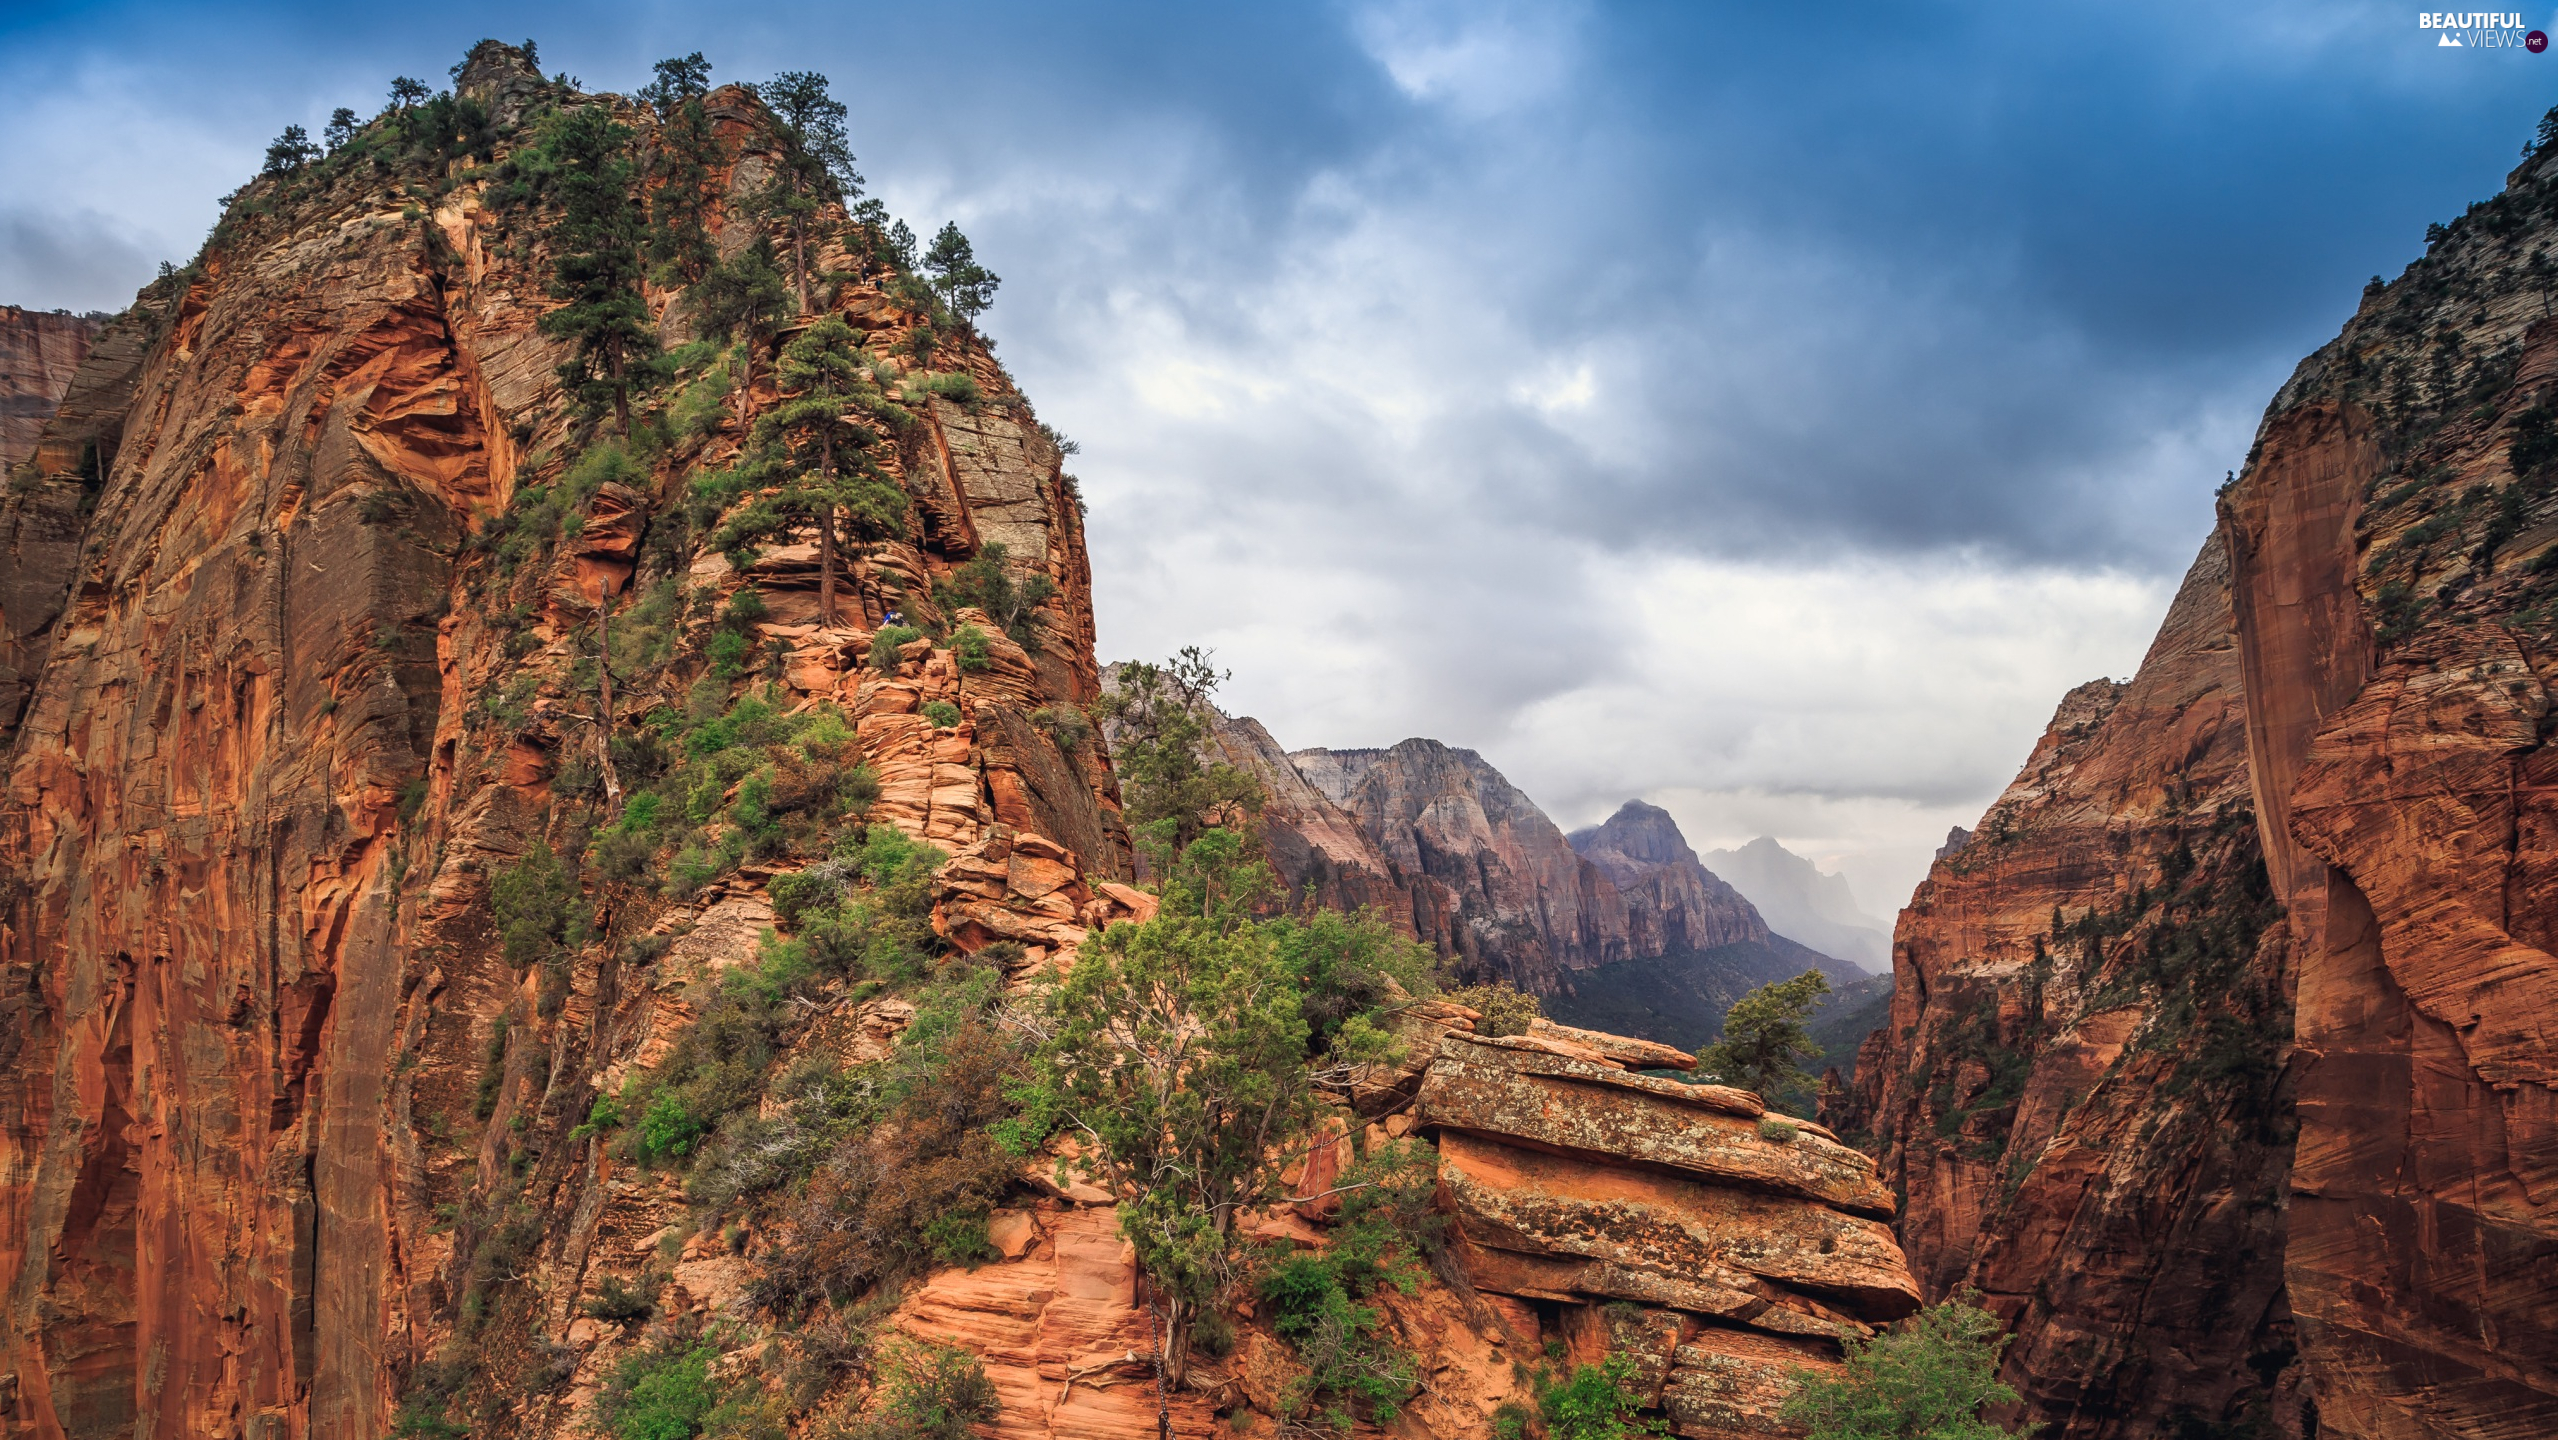 canyon, Rock Formation, Utah State, Angels Landing, Zion National Park, rocks, The United States